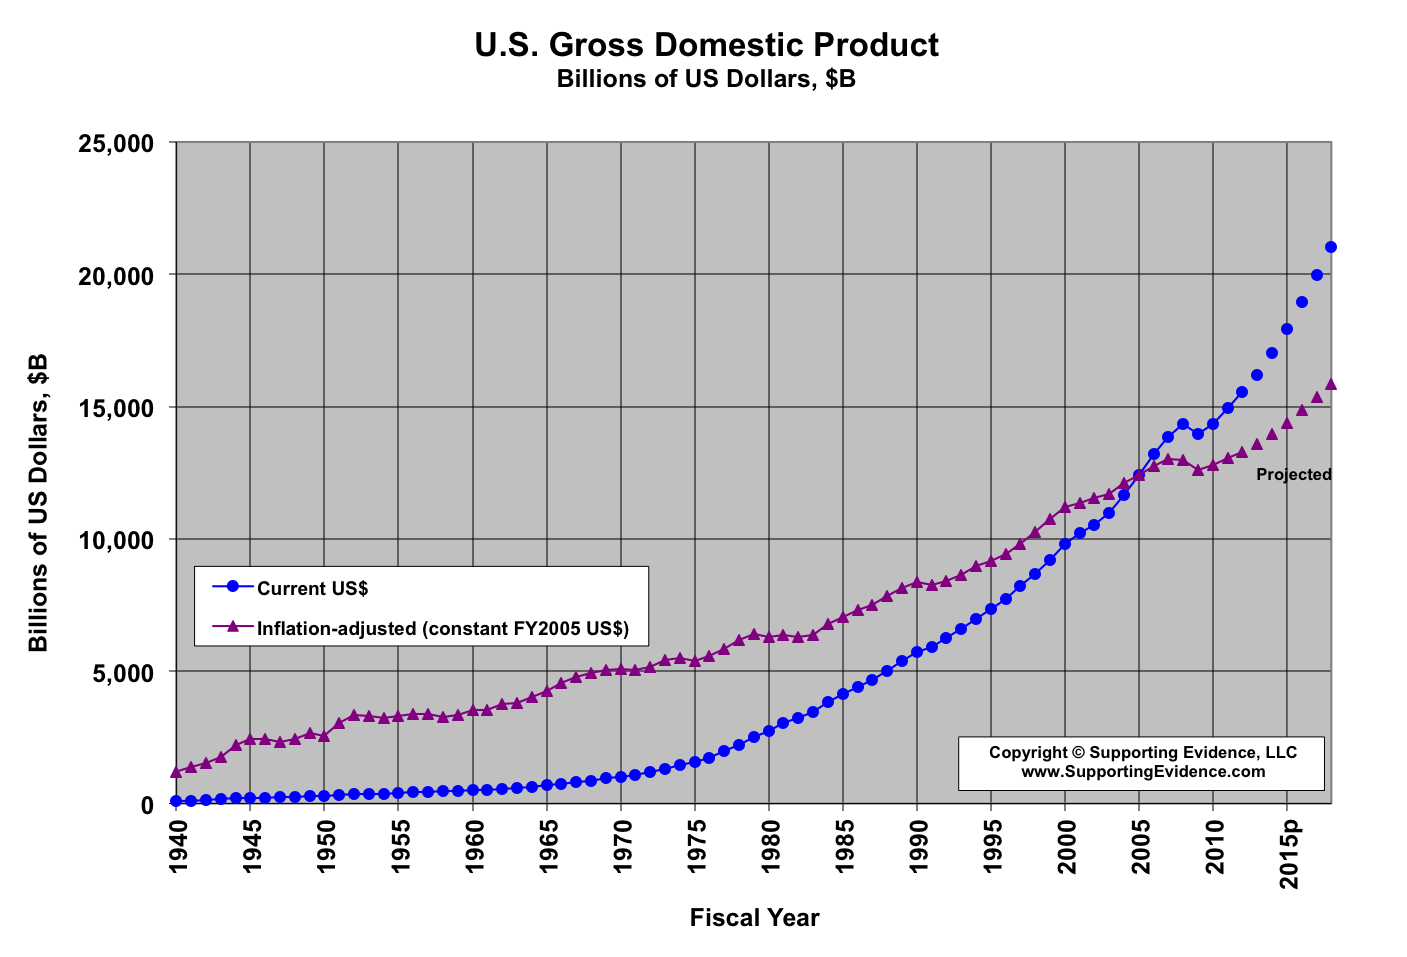 an introduction to gross domestic product of home depot company This paper introduces new users to the basics of the us national income and product accounts (nipas) it discusses the economic concepts that underlie the nipas.